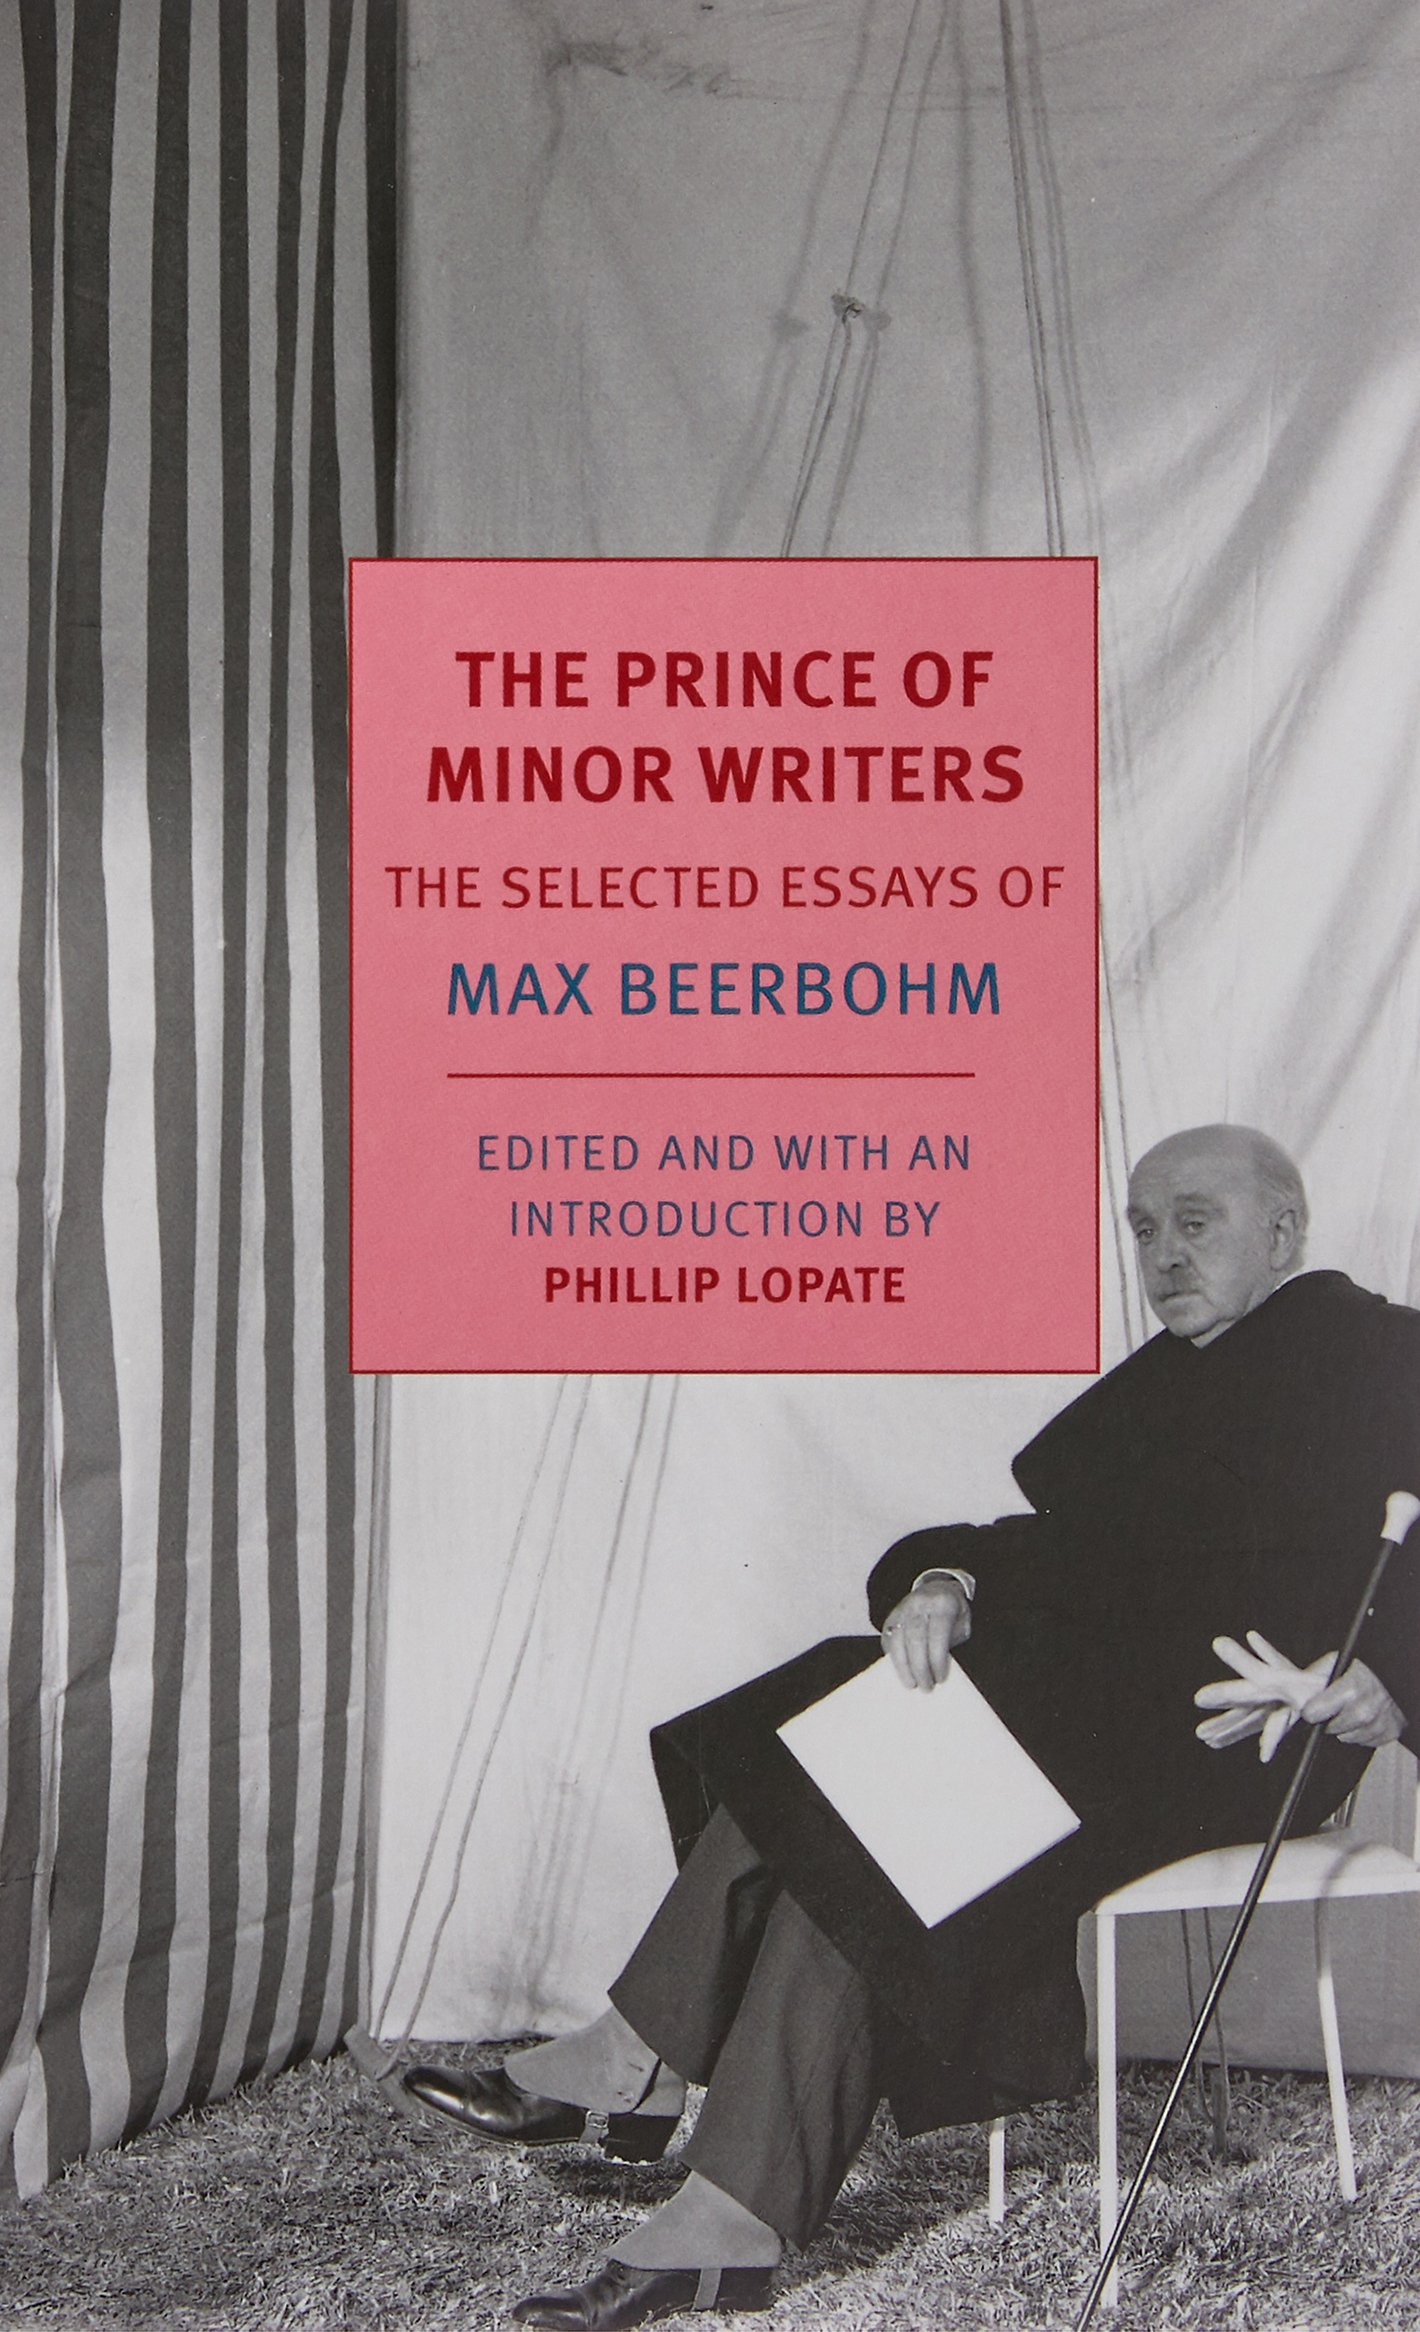 Essay Paper Checker Amazoncom The Prince Of Minor Writers The Selected Essays Of Max  Beerbohm  Max Beerbohm Phillip Lopate Books Argument Essay Sample Papers also Example Essay English Amazoncom The Prince Of Minor Writers The Selected Essays Of Max  A Modest Proposal Ideas For Essays